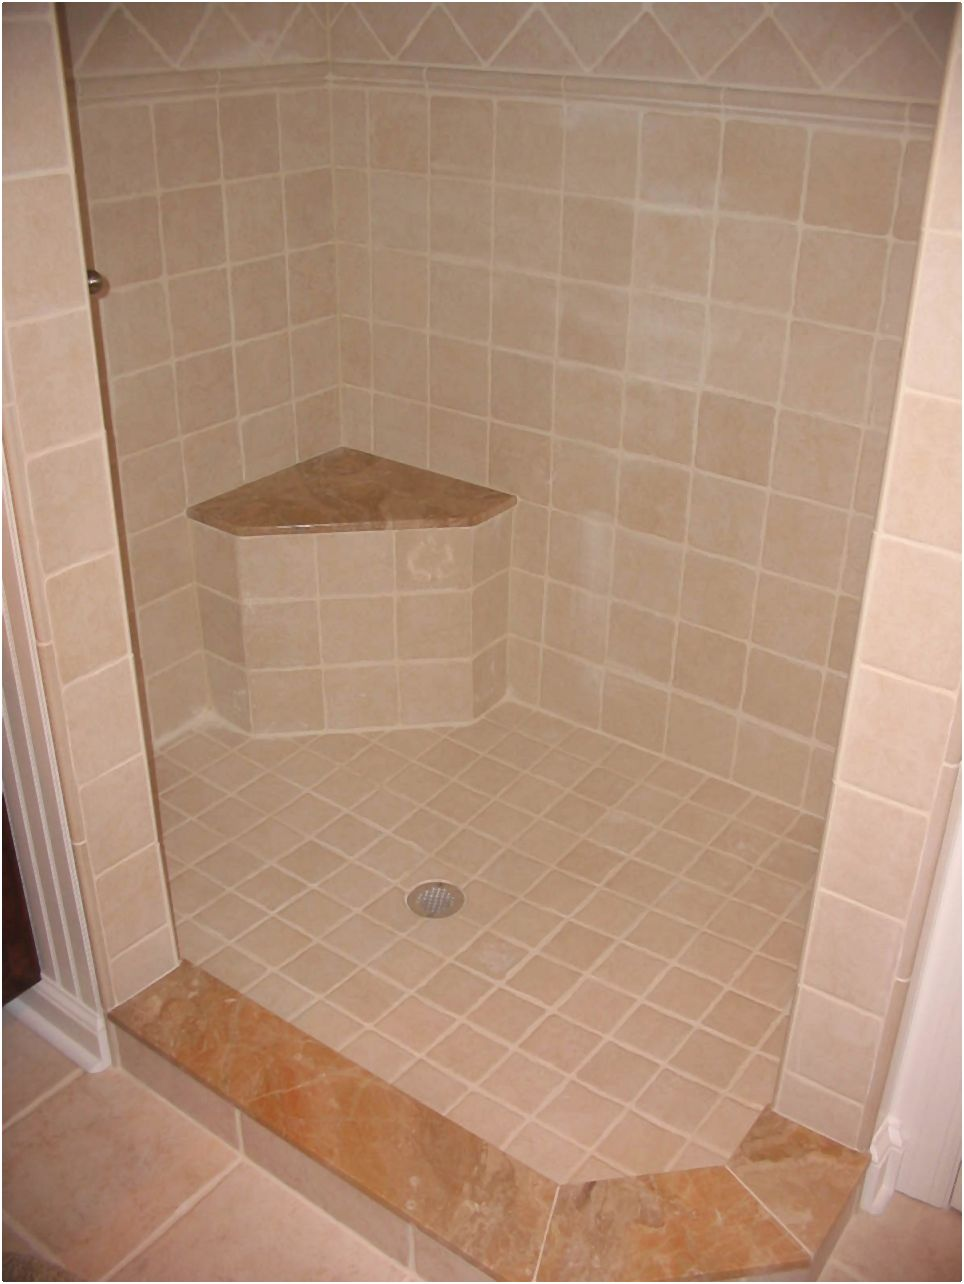 30 shower tile ideas on a budget Bathroom tile ideas menards